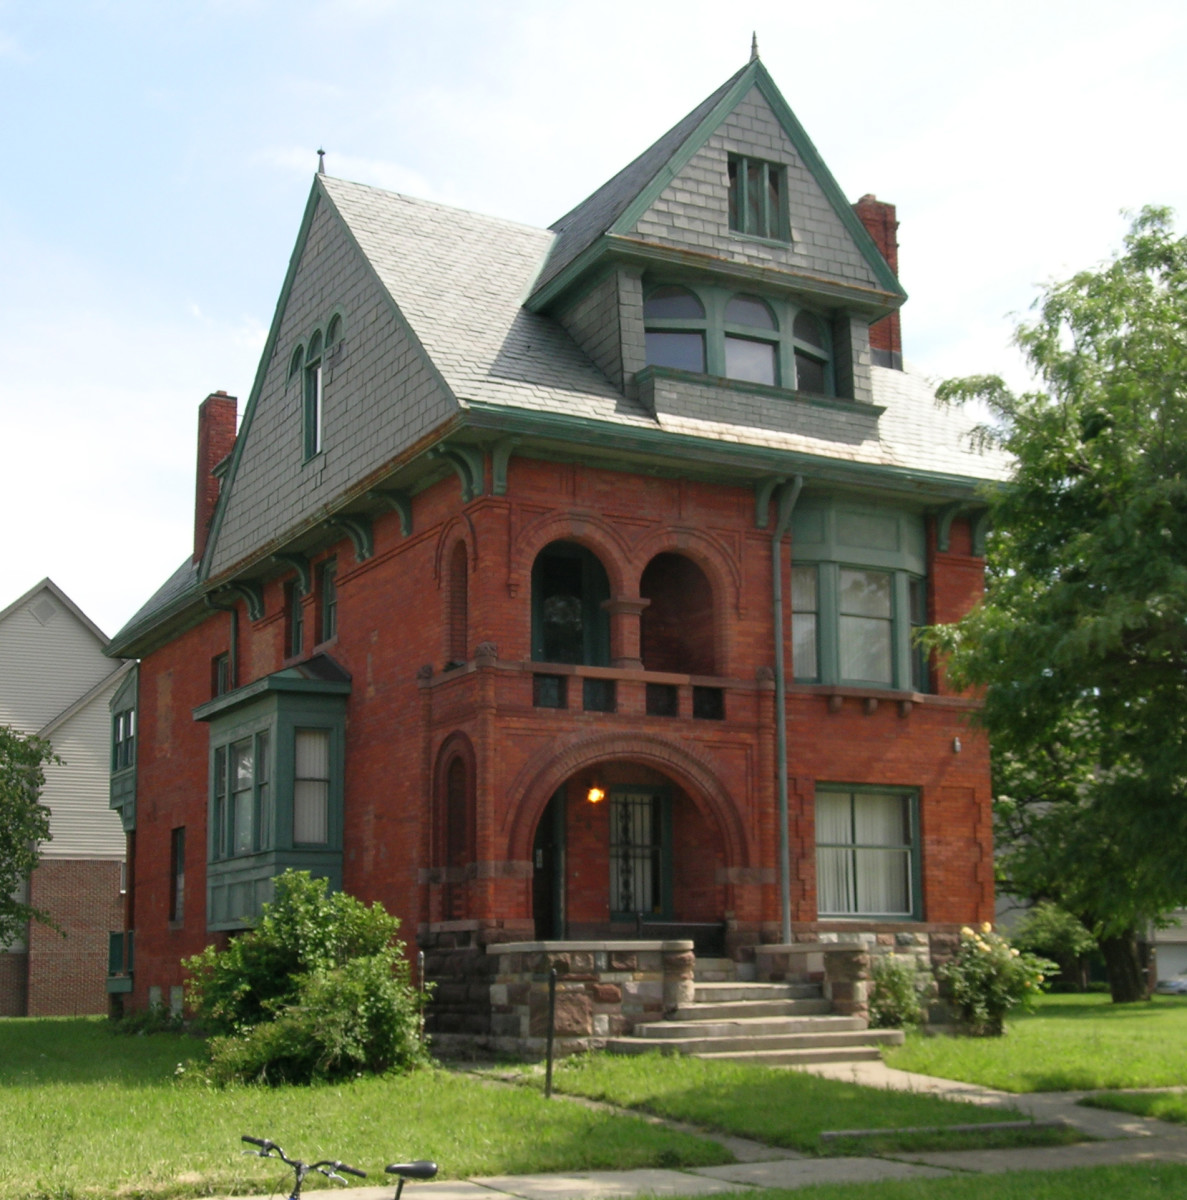 Historic Dunbar Hospital in Detroit, MI, listed on the US National Register of Historic Places.